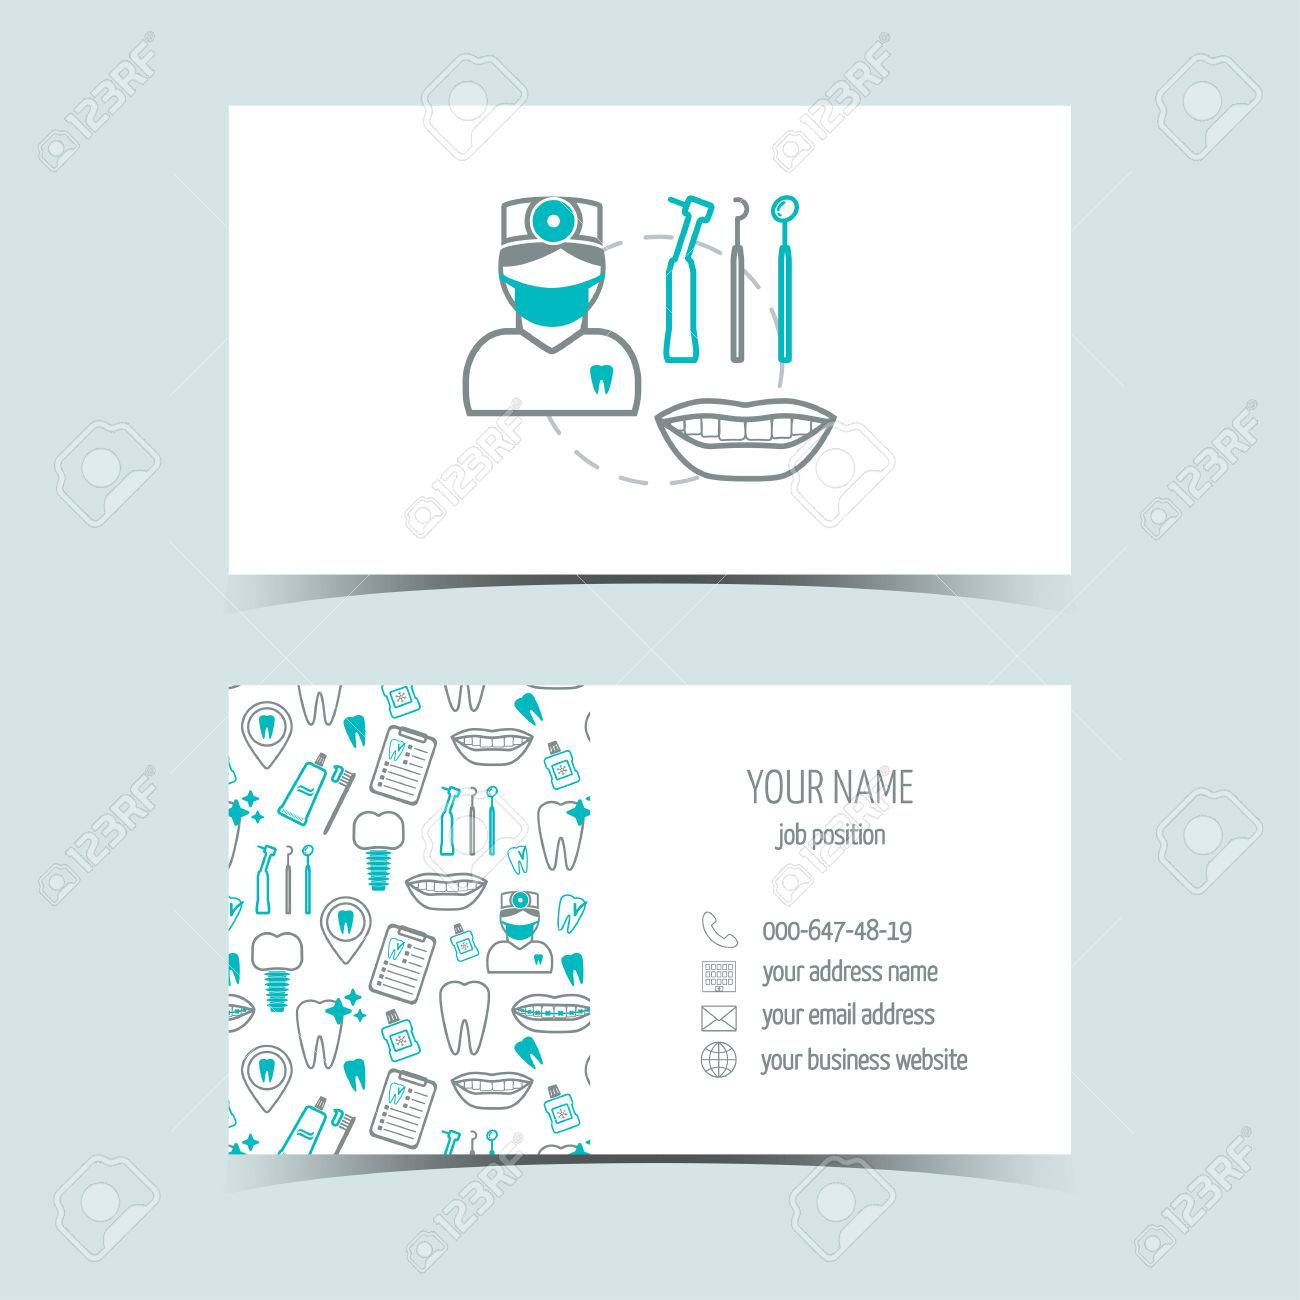 Unique dental business cards image collections free business cards unique dental business cards image collections free business cards dental hygienist business cards image collections free magicingreecefo Images